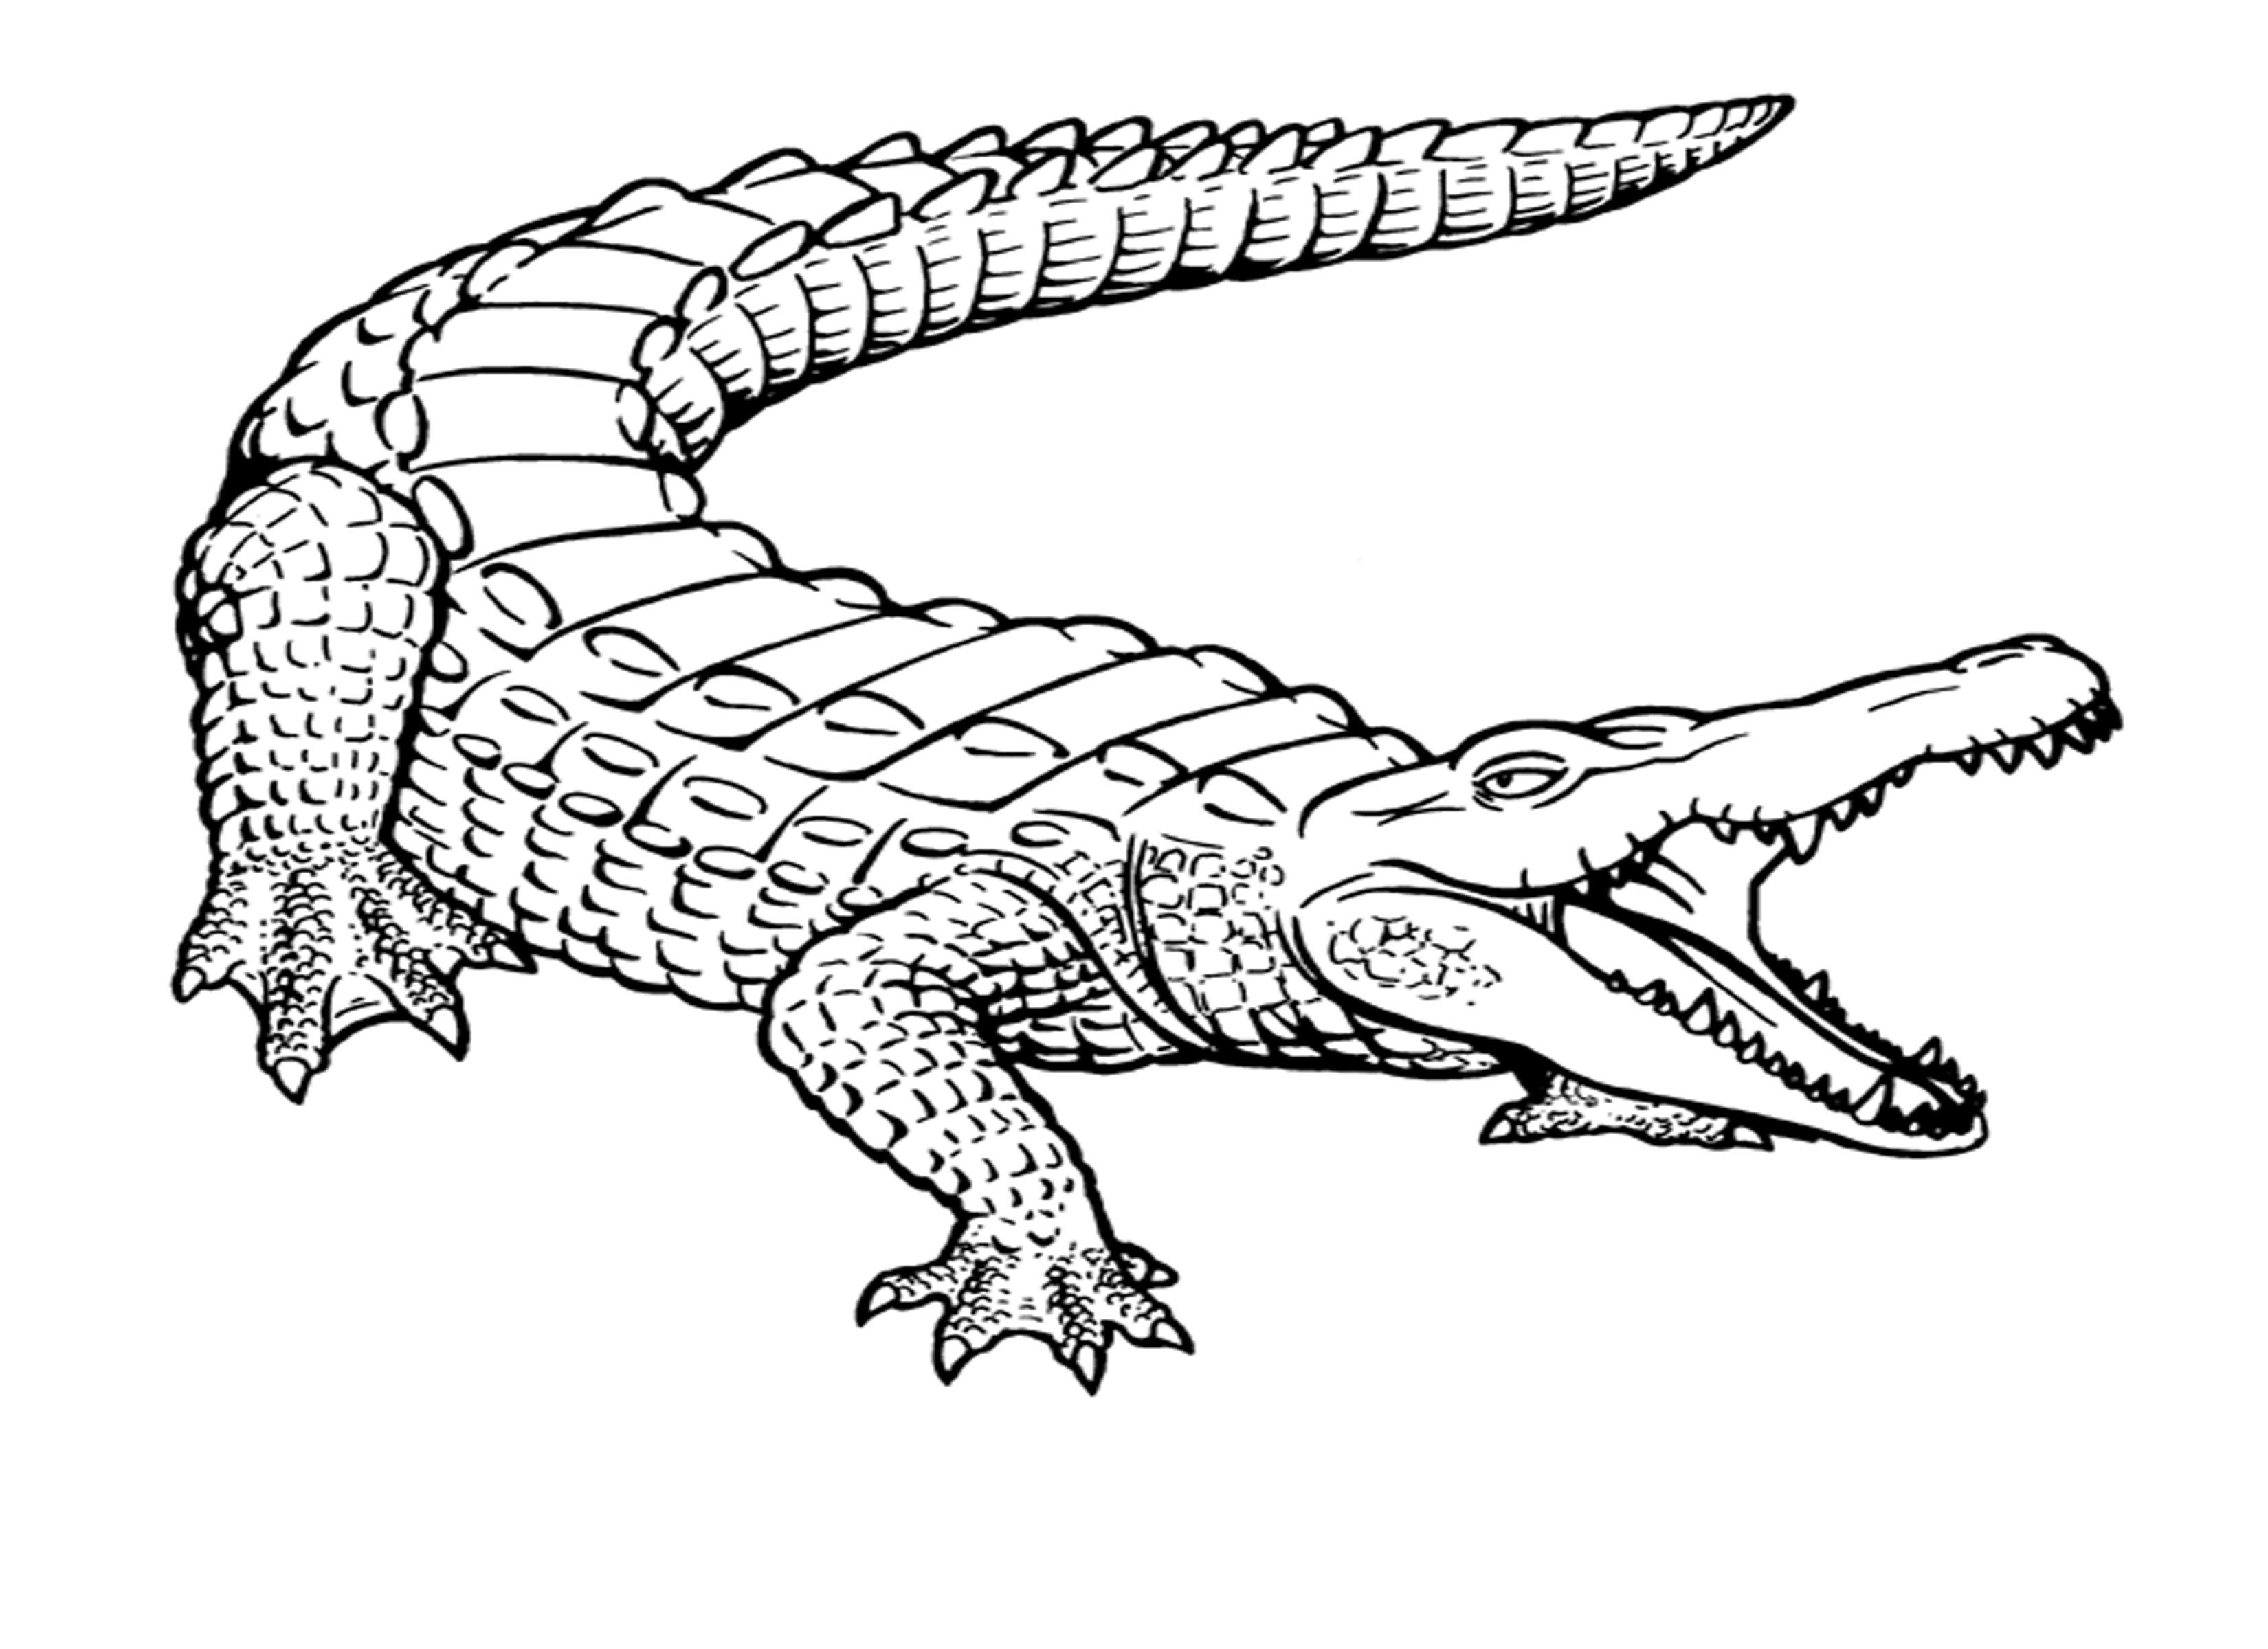 Jeux de coloriage crocodile a colorier